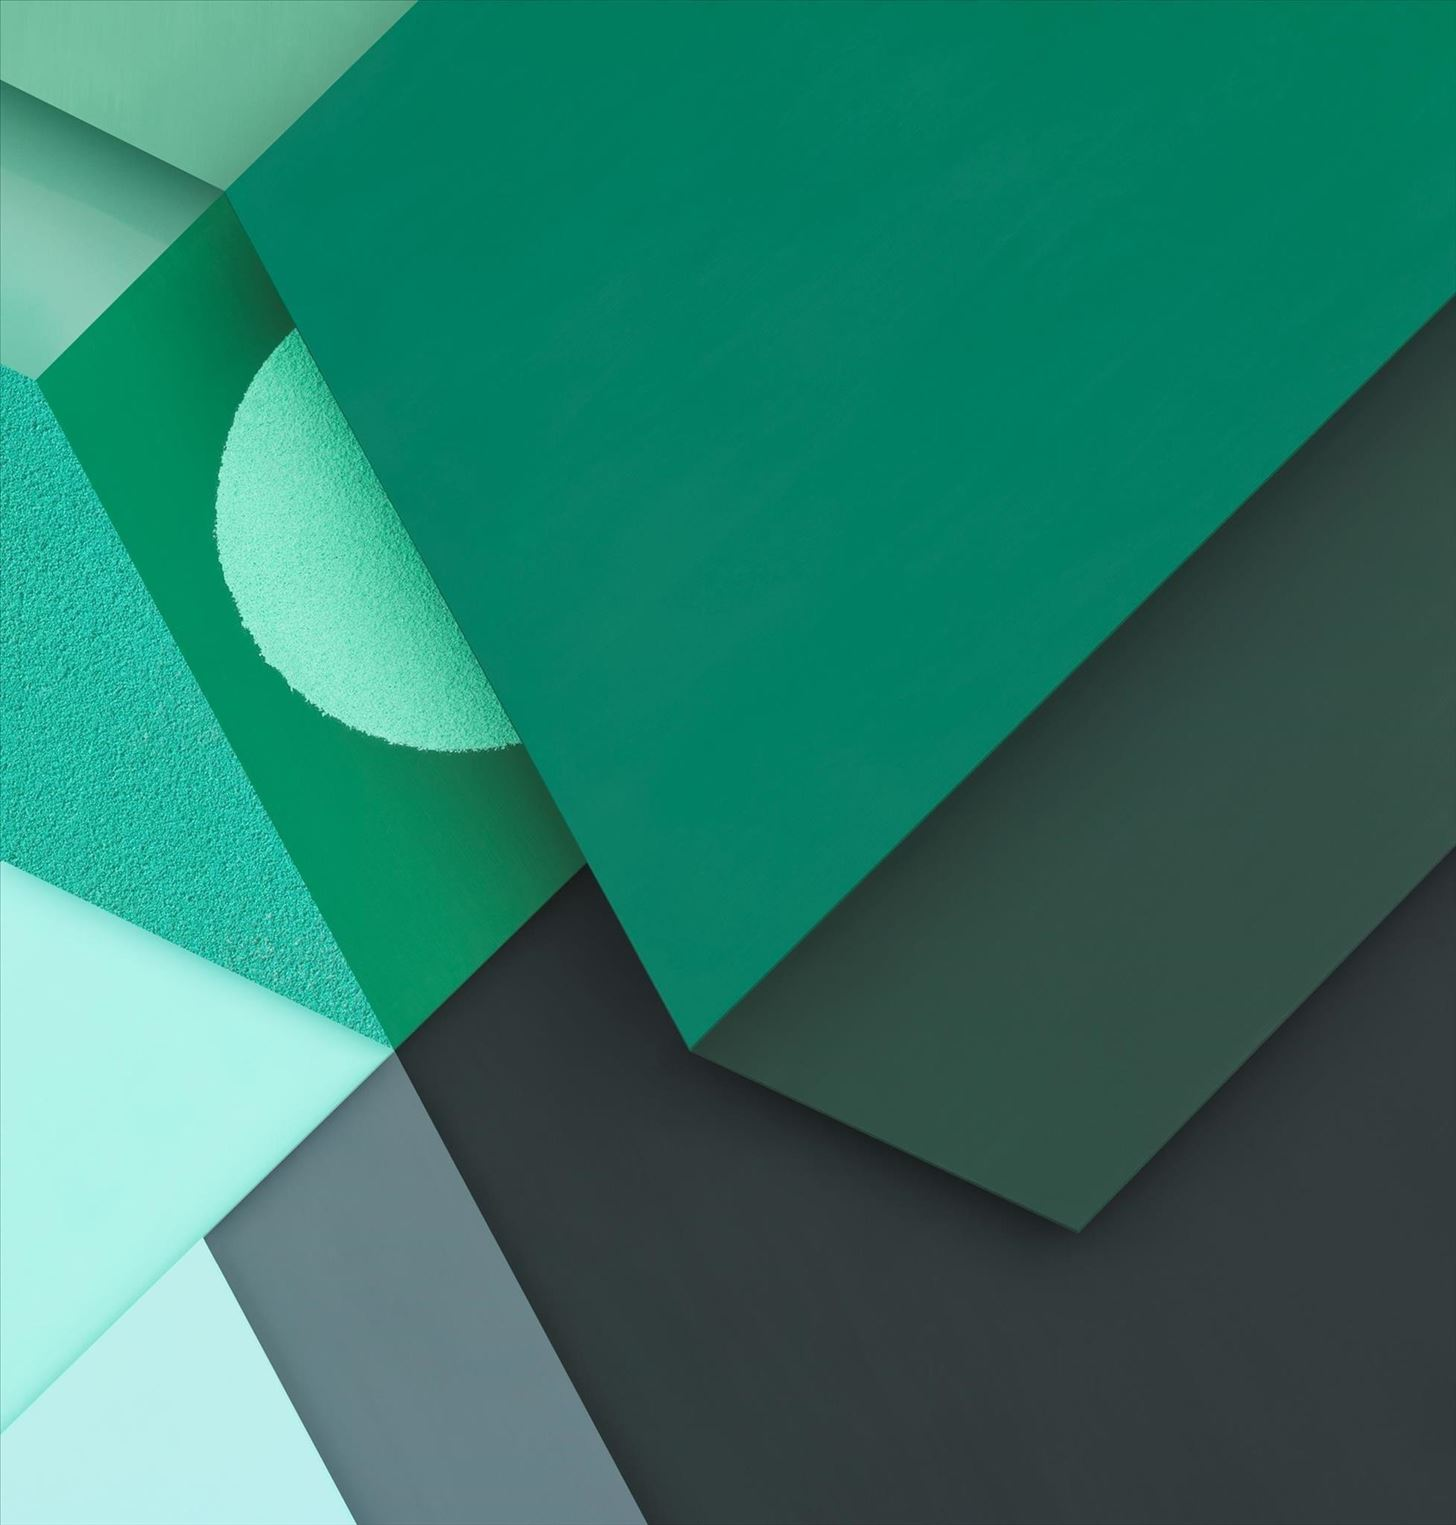 Download All the New 6.0 Marshmallow Wallpapers on Your Android Right Now